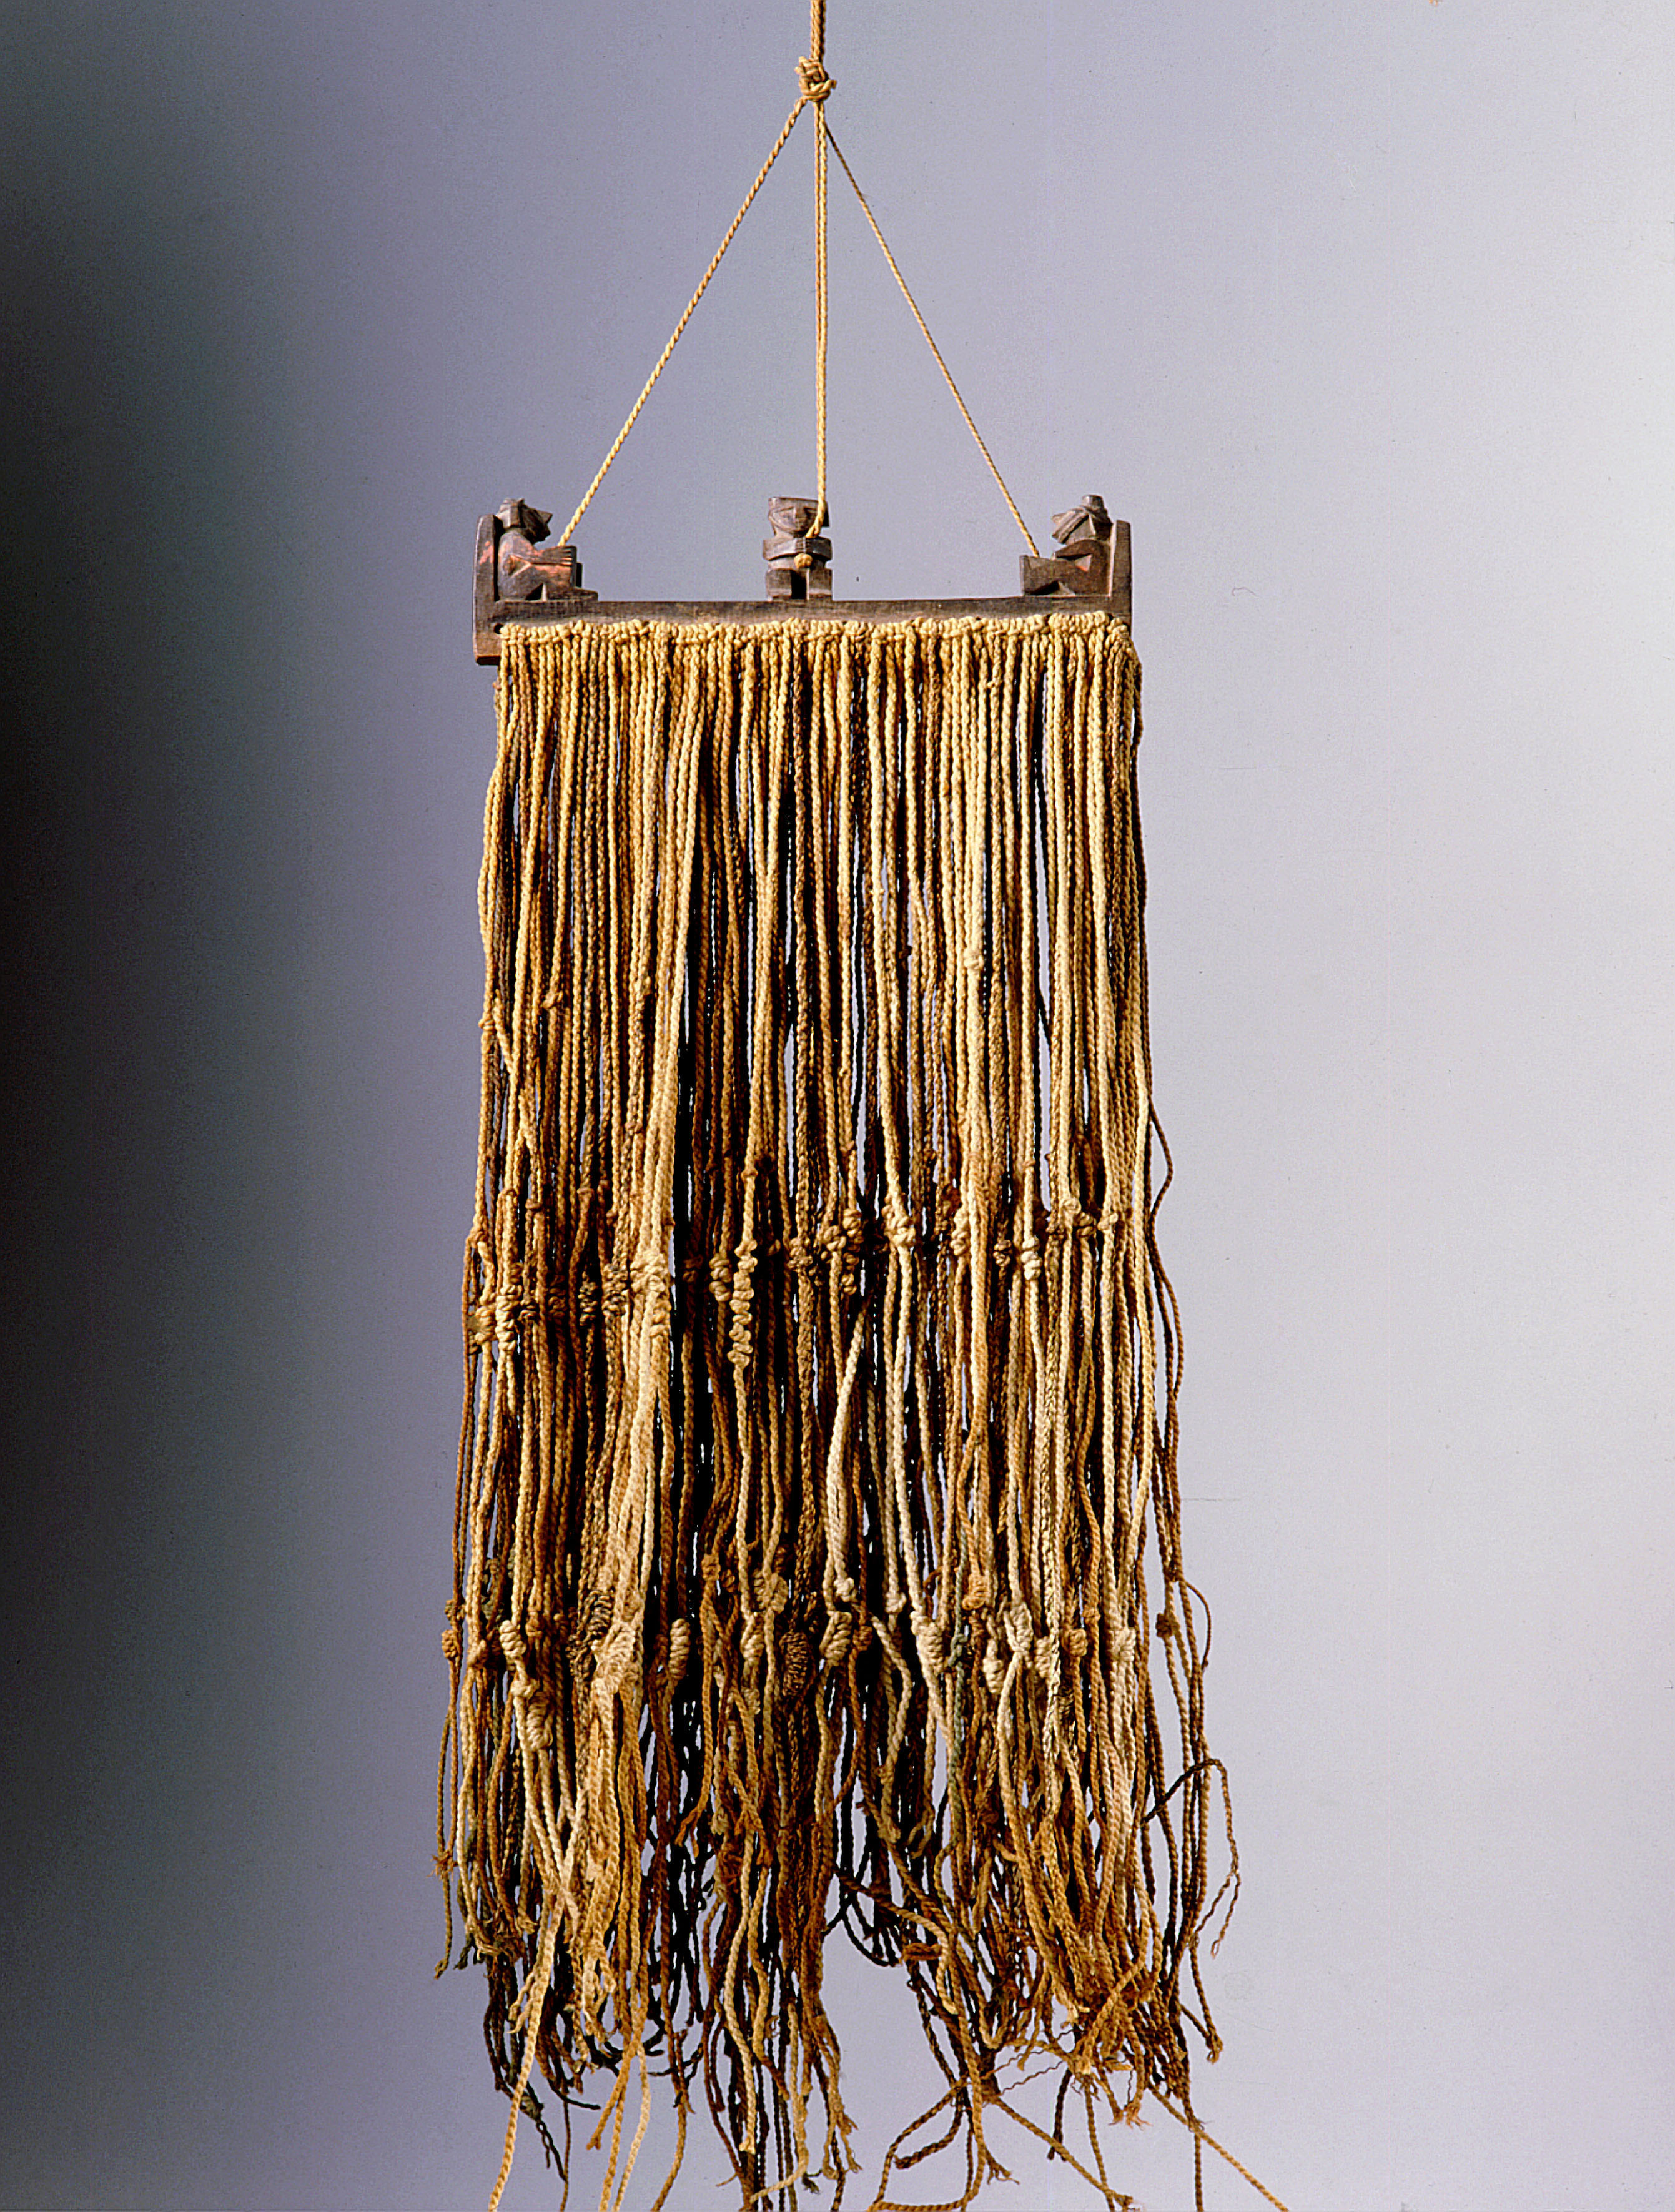 The quipu was a series of knotted strings by which the Inca kept their administrative records. Peru. Inca. 1430-1532 AD.